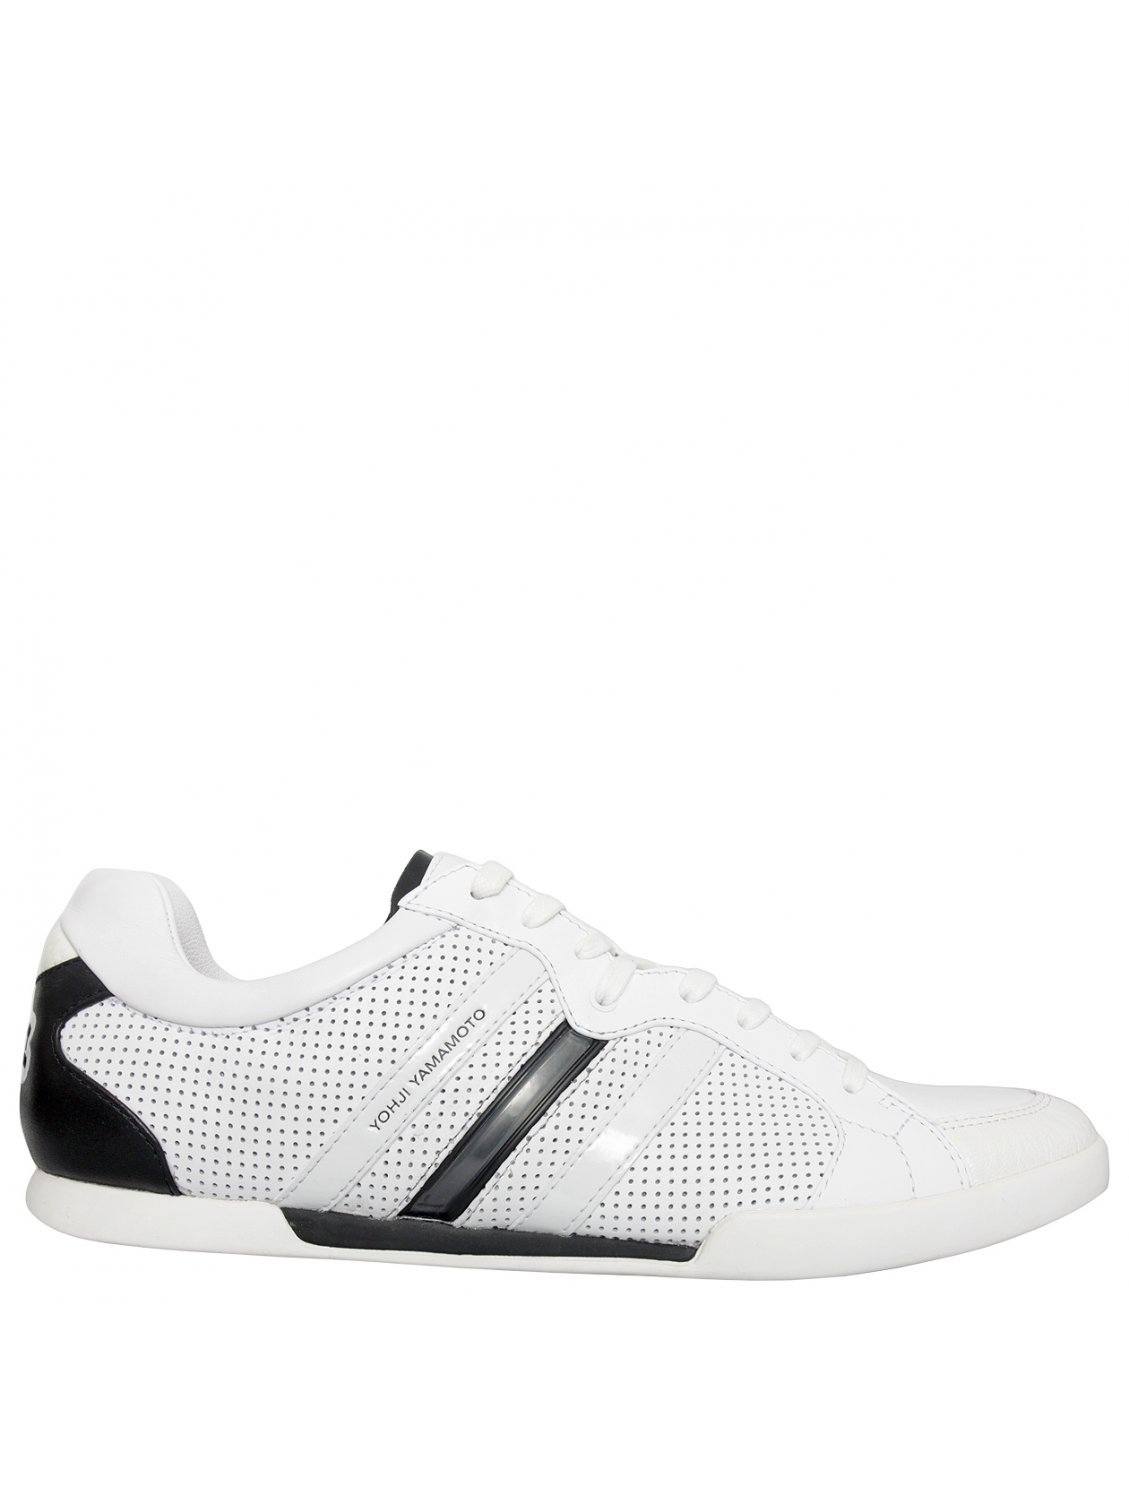 5b1379c0e4024 Y-3 Sala Classic Ii Trainer White in White for Men - Lyst